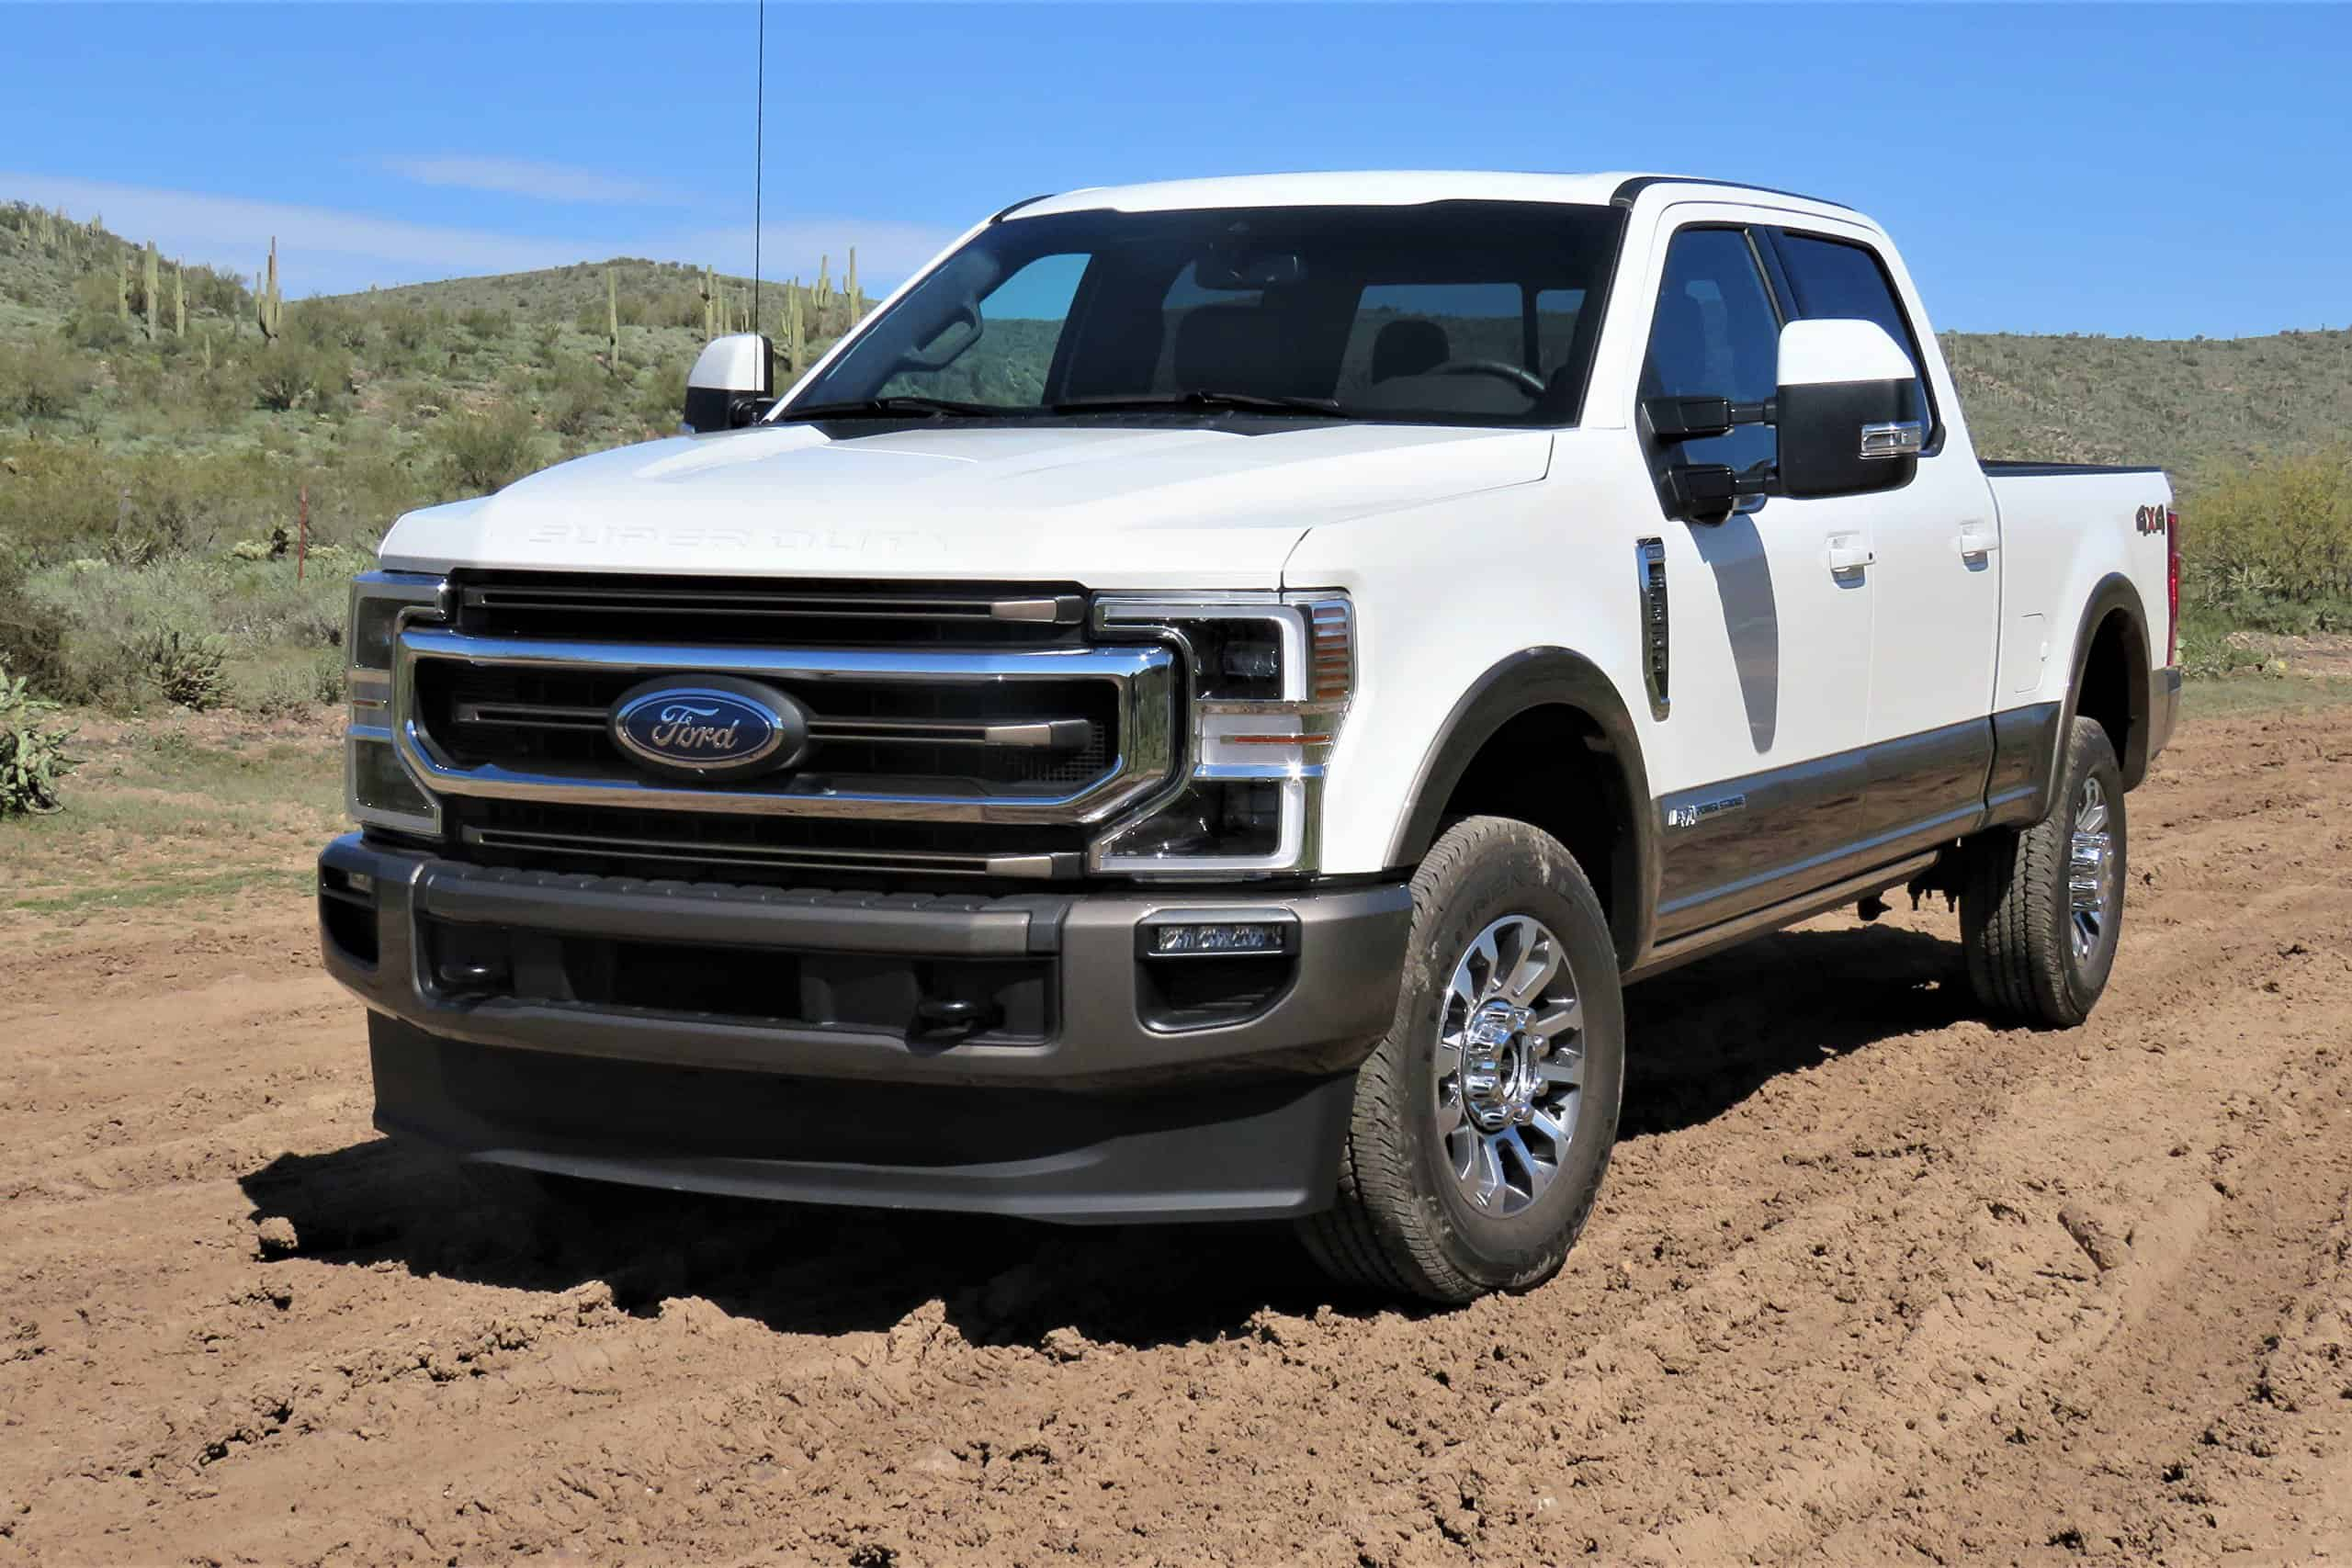 2020 Ford F350 Super Duty History